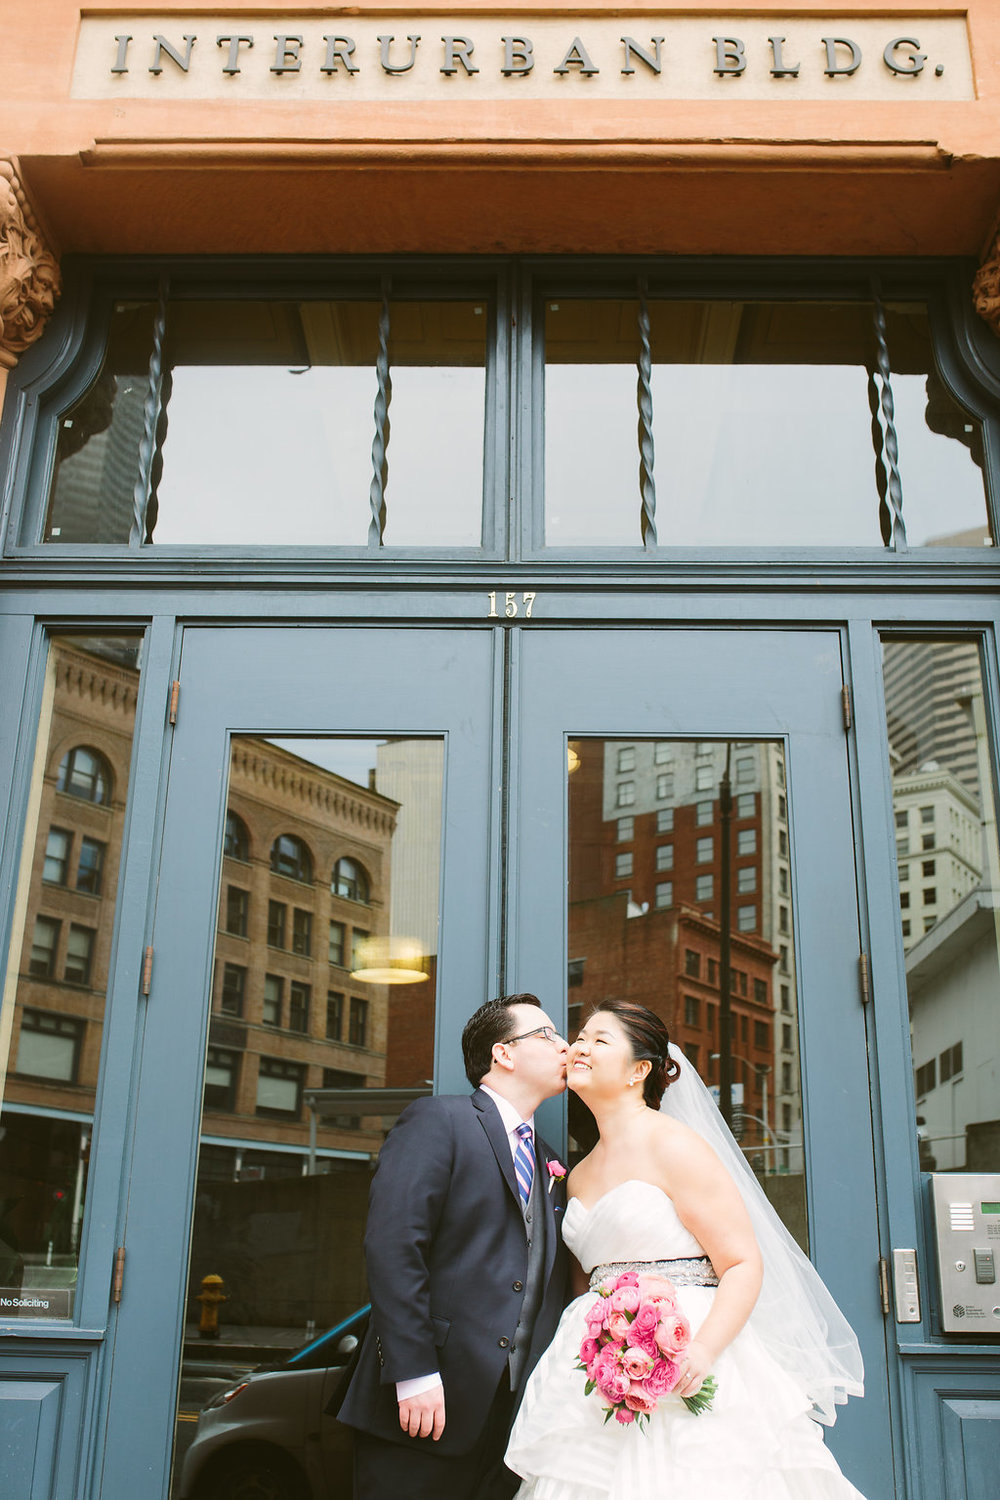 interurban_bldg_kiss